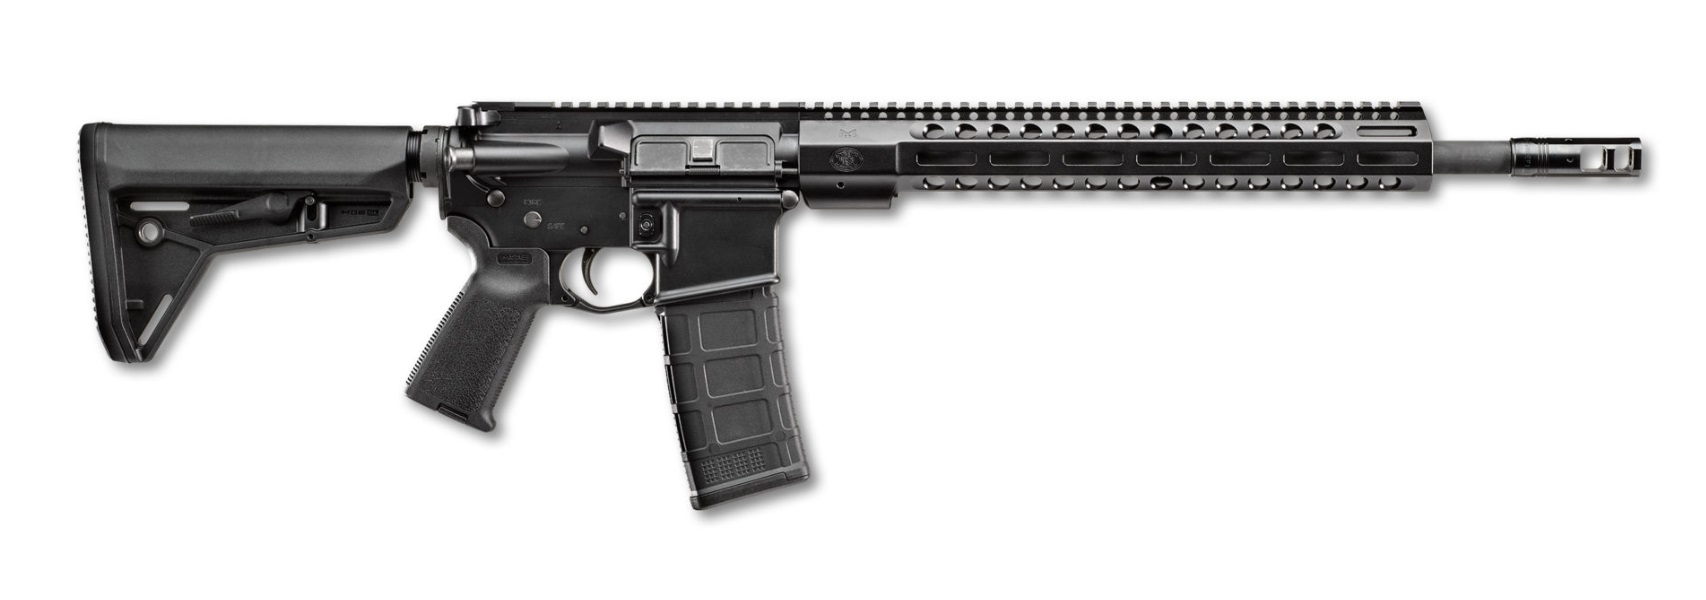 FN FN15 Tactical Carbine II 300 AAC Blackout